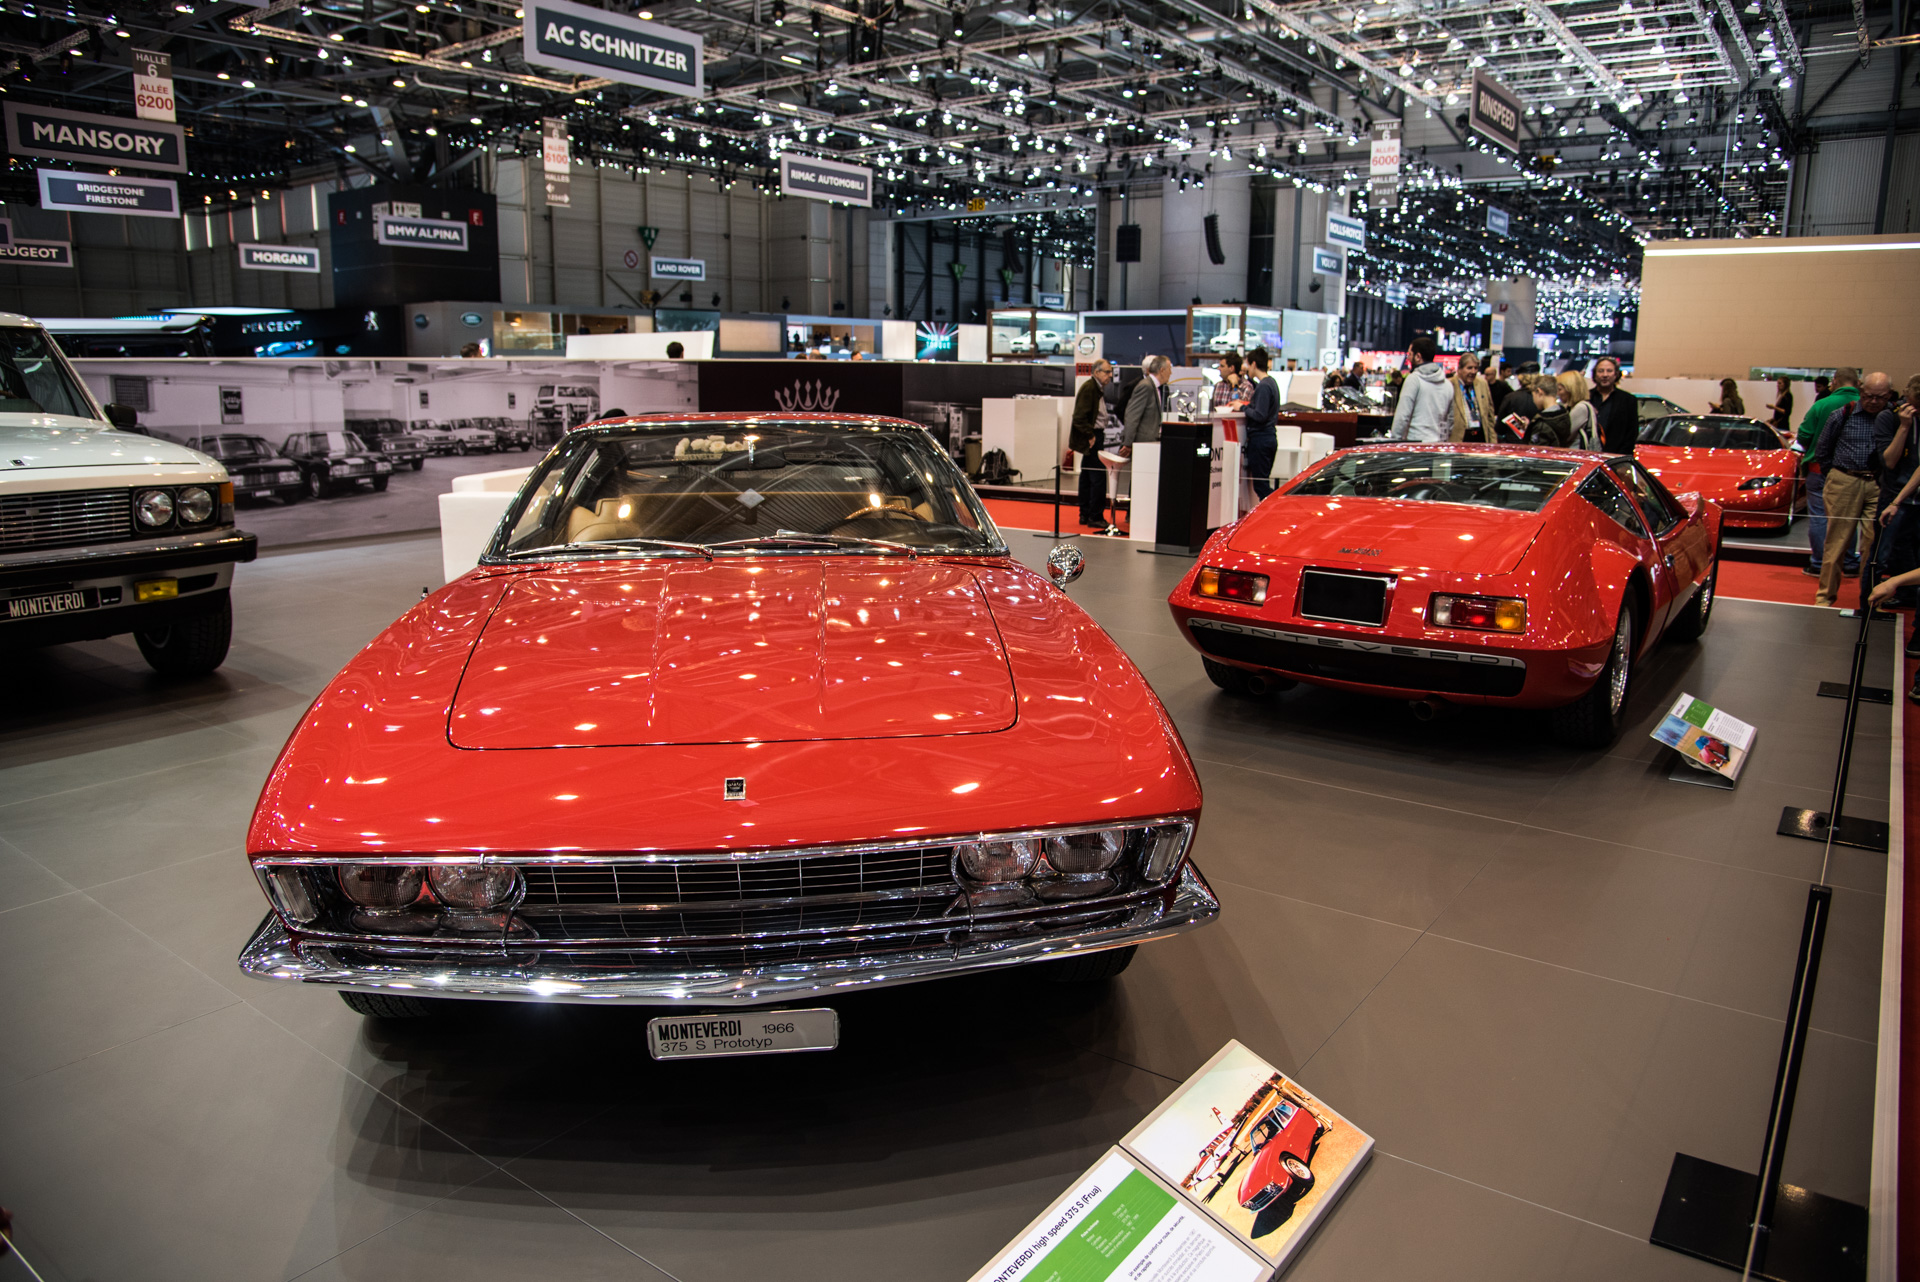 geneva-international-motor-show-igor-sinitsin-42